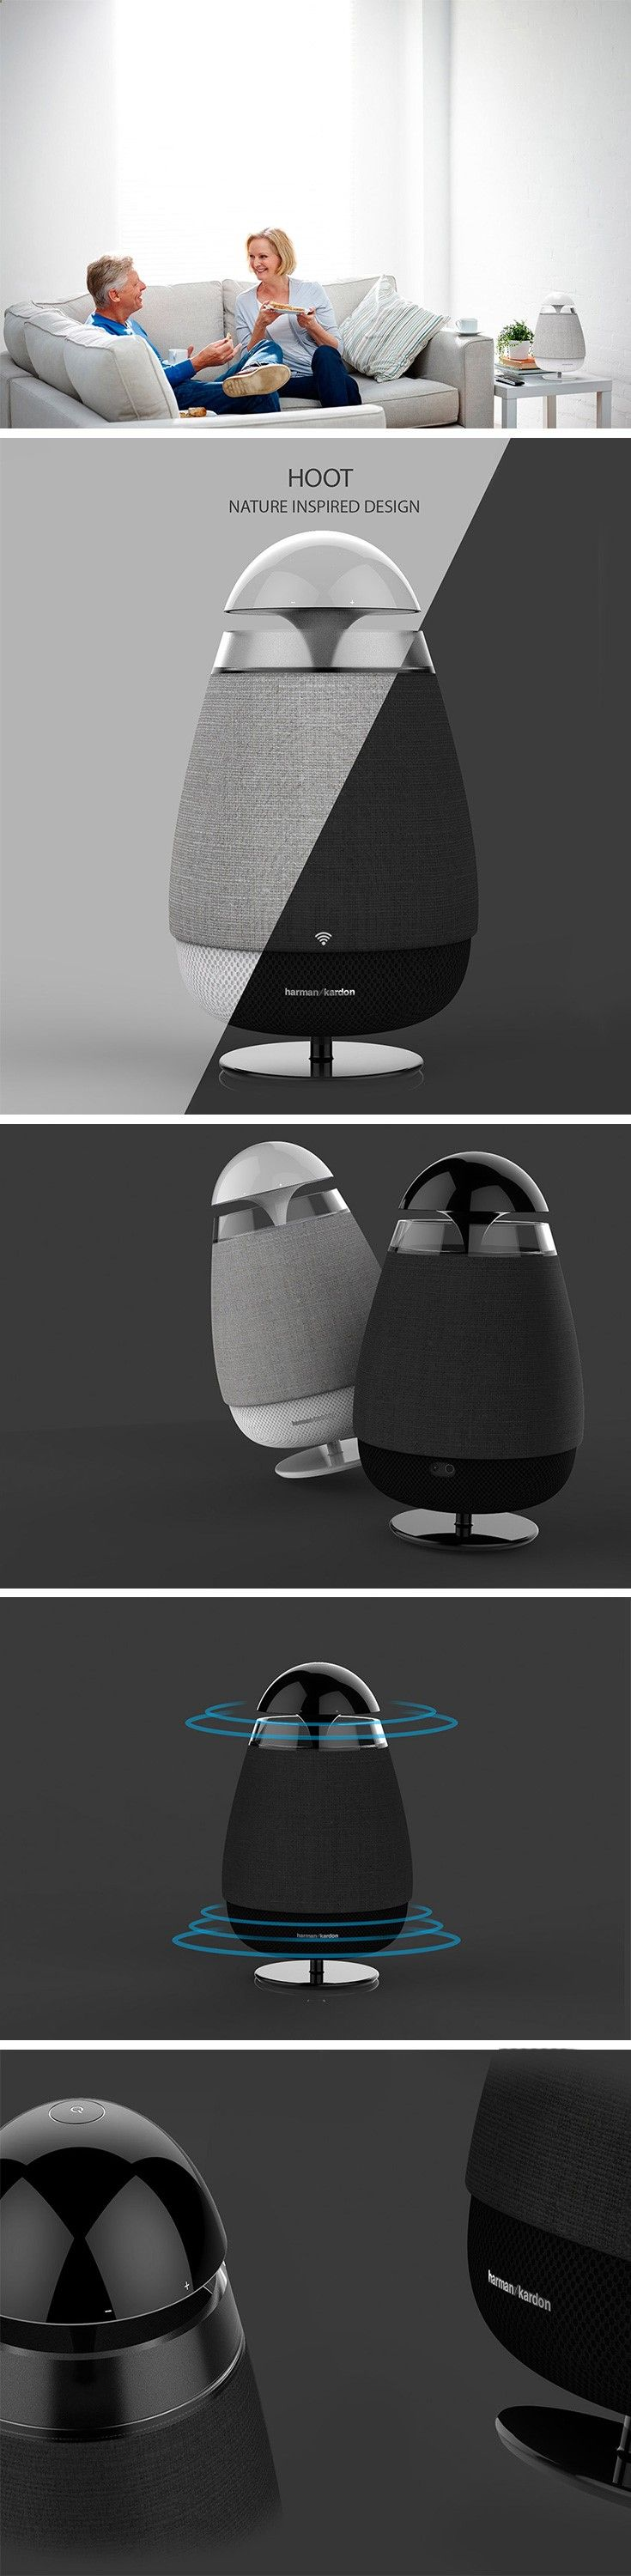 Introducing, HOOT! The owl-inspired, omnidirectional audio system that's as adorable as it is functional! This tabletop speaker can be controlled with its intuitive top that spins around just like an owl's head. Just push to turn off and on or give it a twist to control the volume OR control it wirelessly from your smart device.